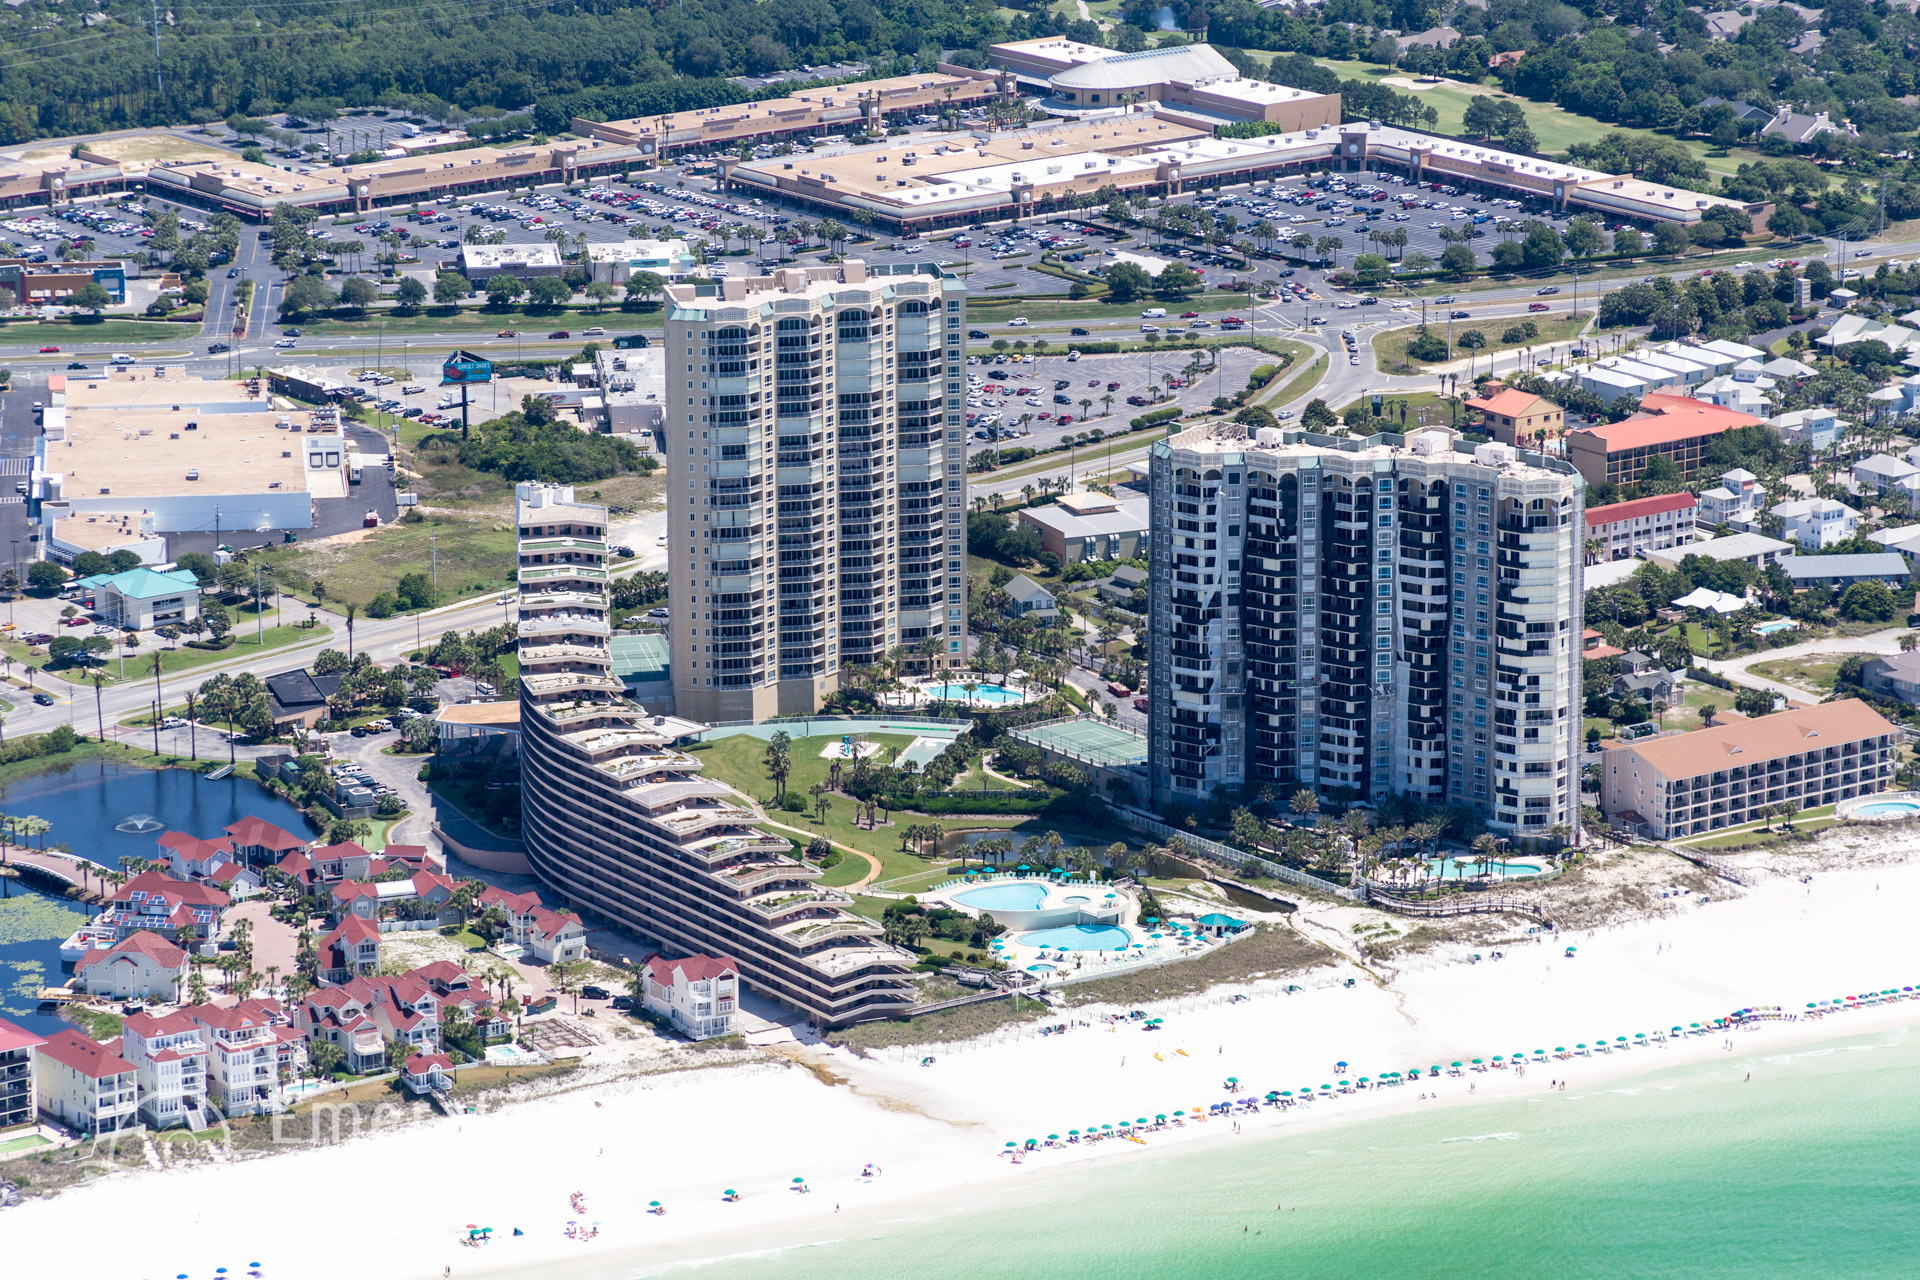 aerial view of the Sandestin Beach Resort